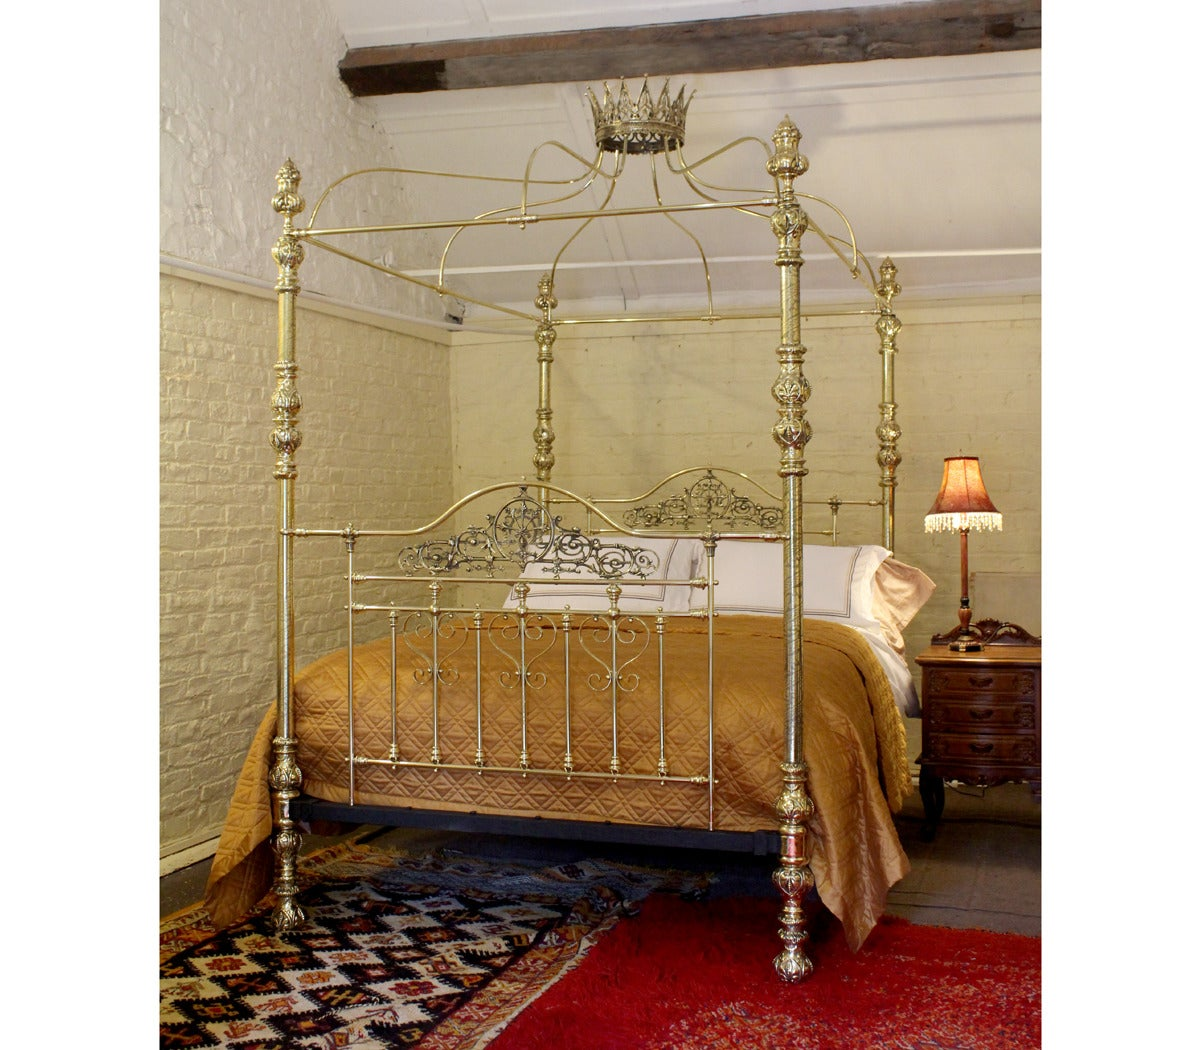 All Brass Crown and Canopy Four-Poster Bed - MKB8 2 - All Brass Crown And Canopy Four-Poster Bed - MKB8 At 1stdibs